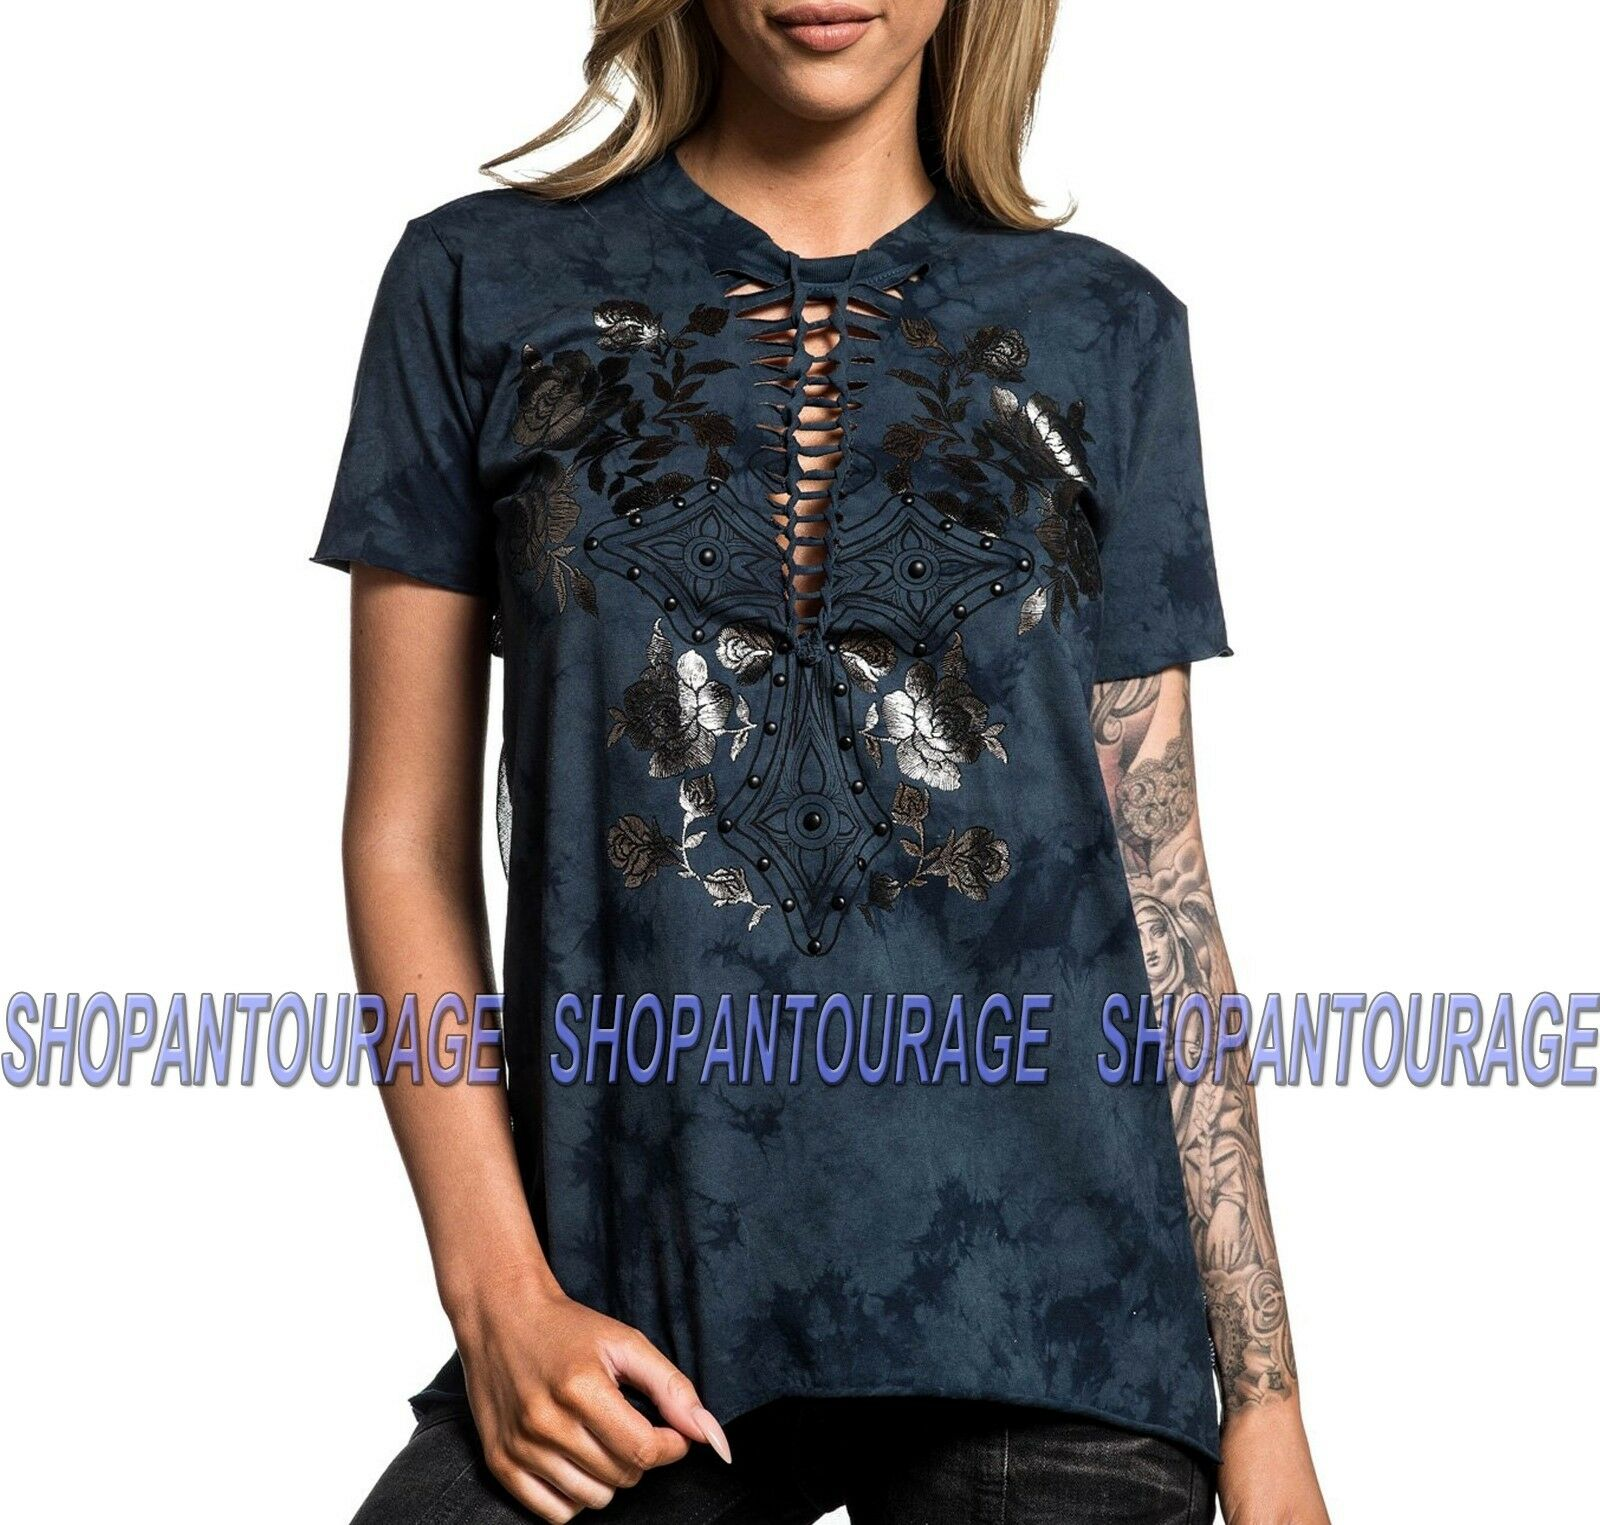 Affliction Bella AW19765 New Short Sleeve Graphic Fashion T-shirt Top for damen